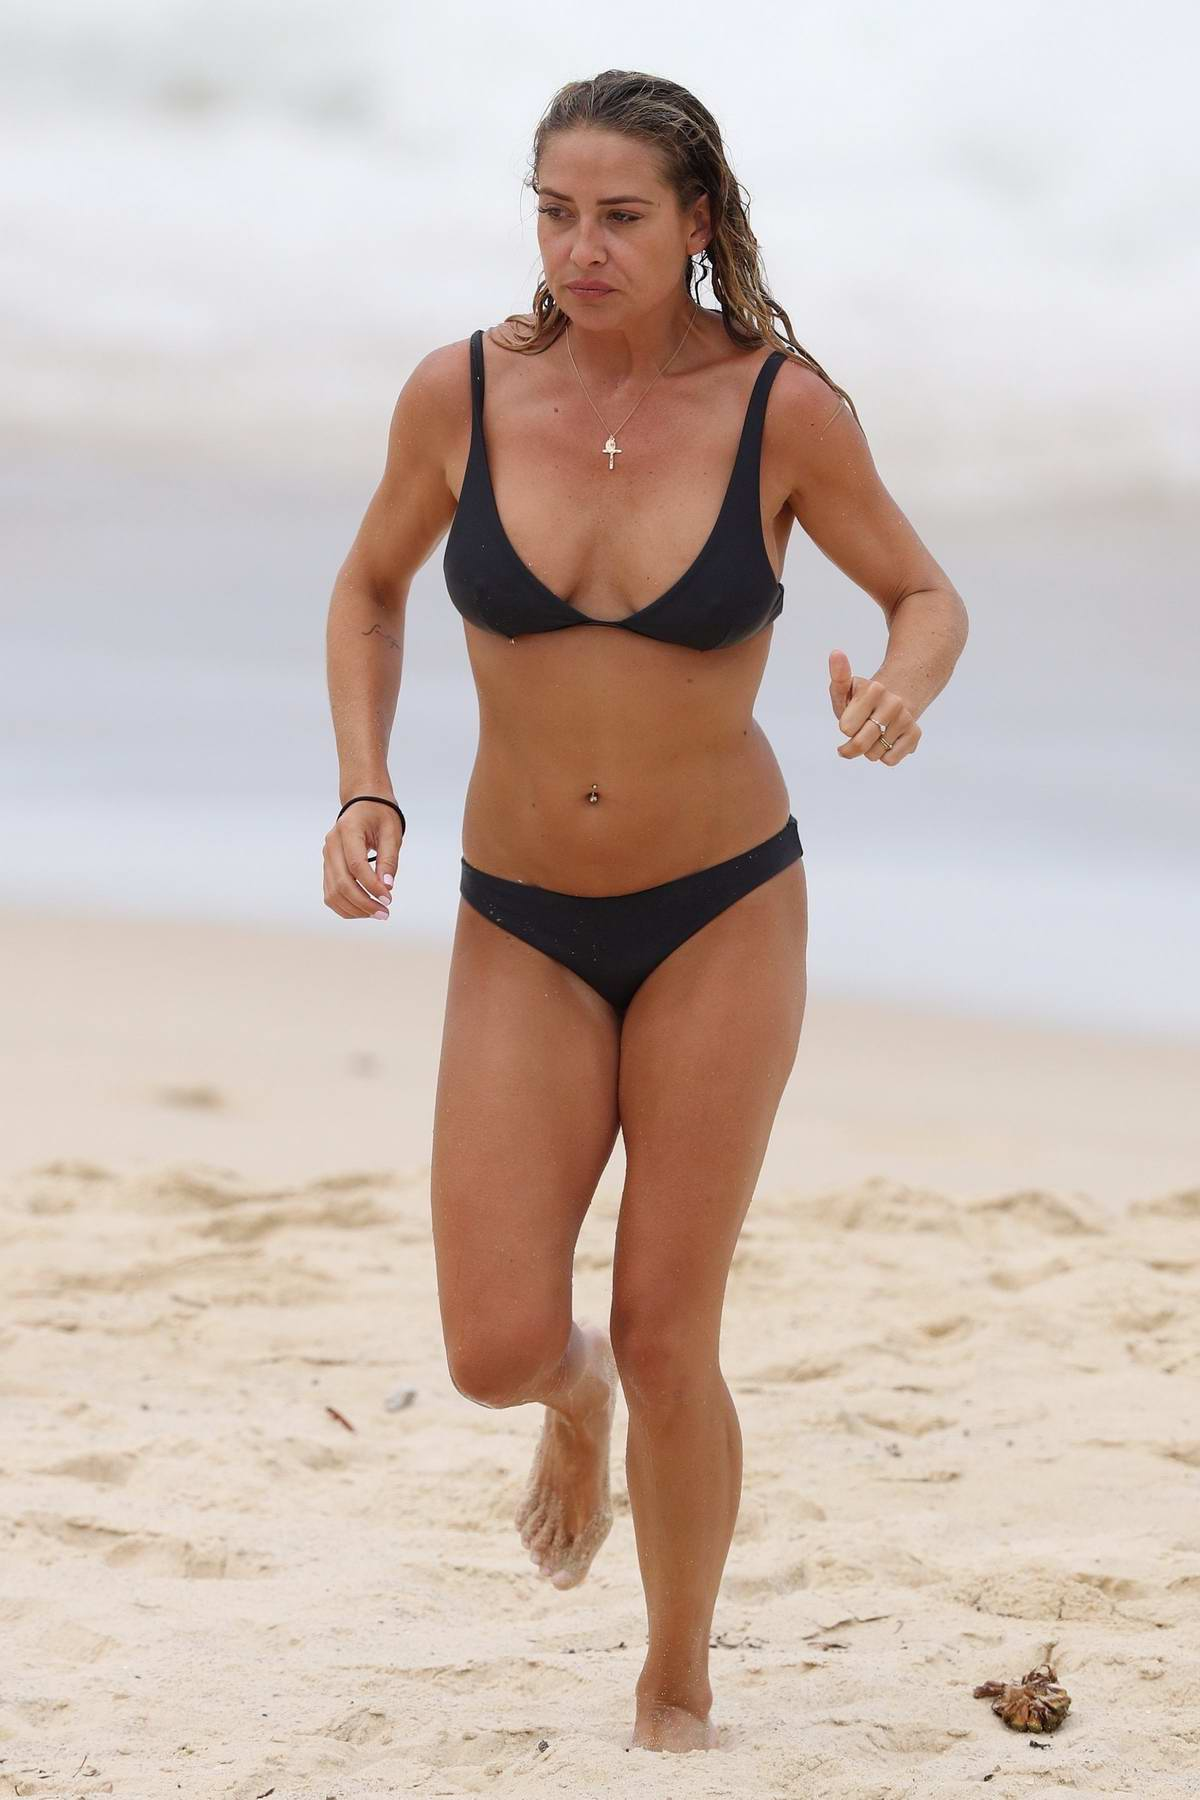 Lisa Clark in a black bikini enjoying the ocean with her boyfriend in Sydney